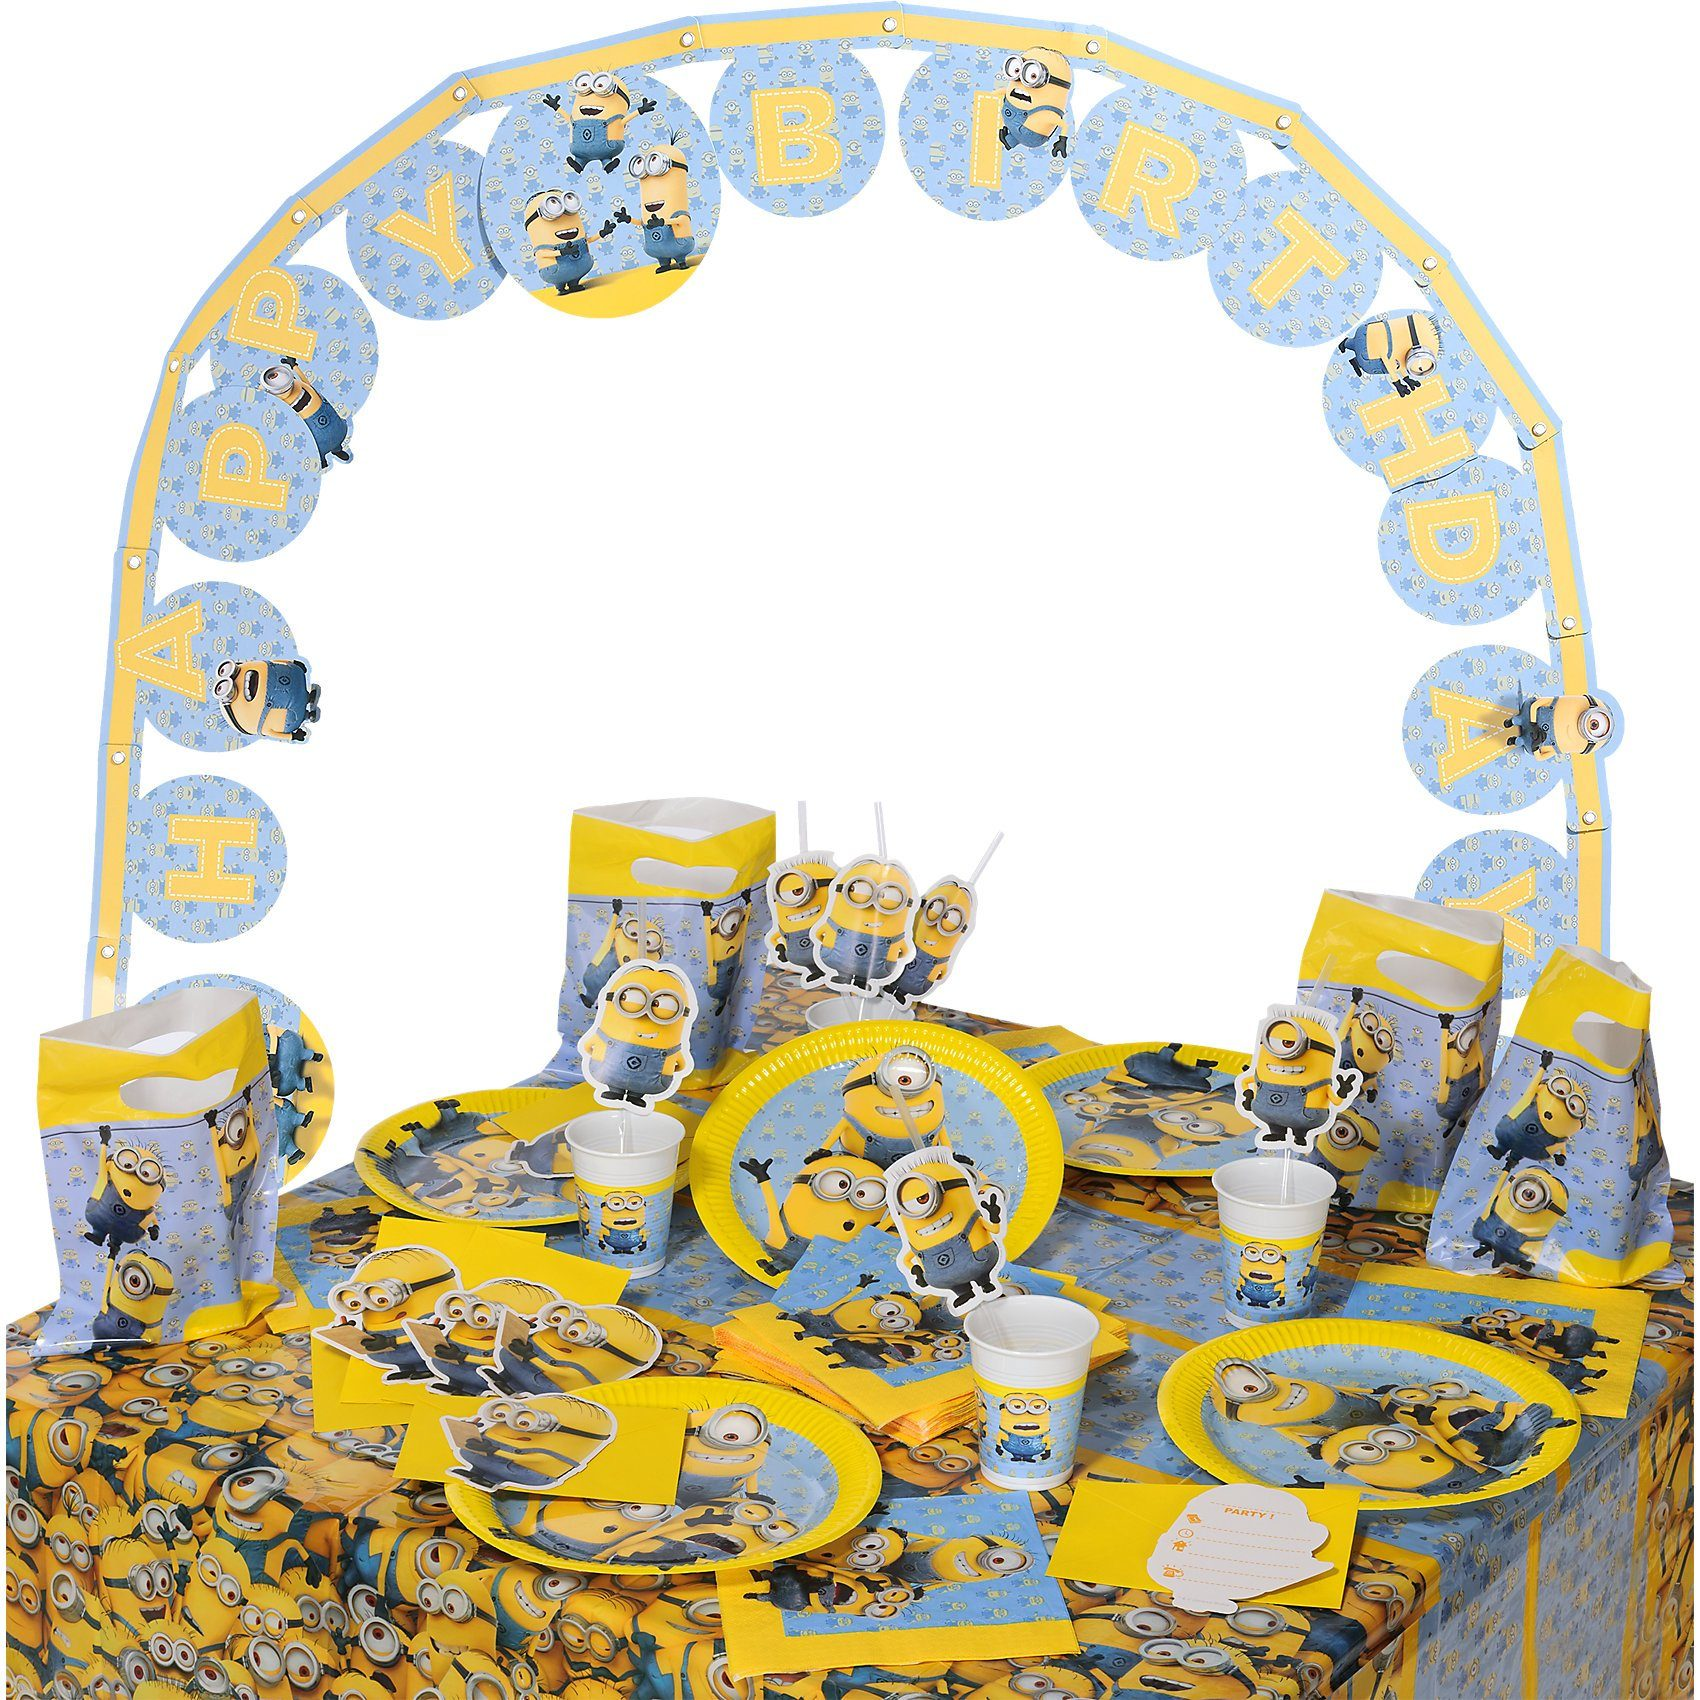 Procos Partyset Lovely Minions, 56-tlg.